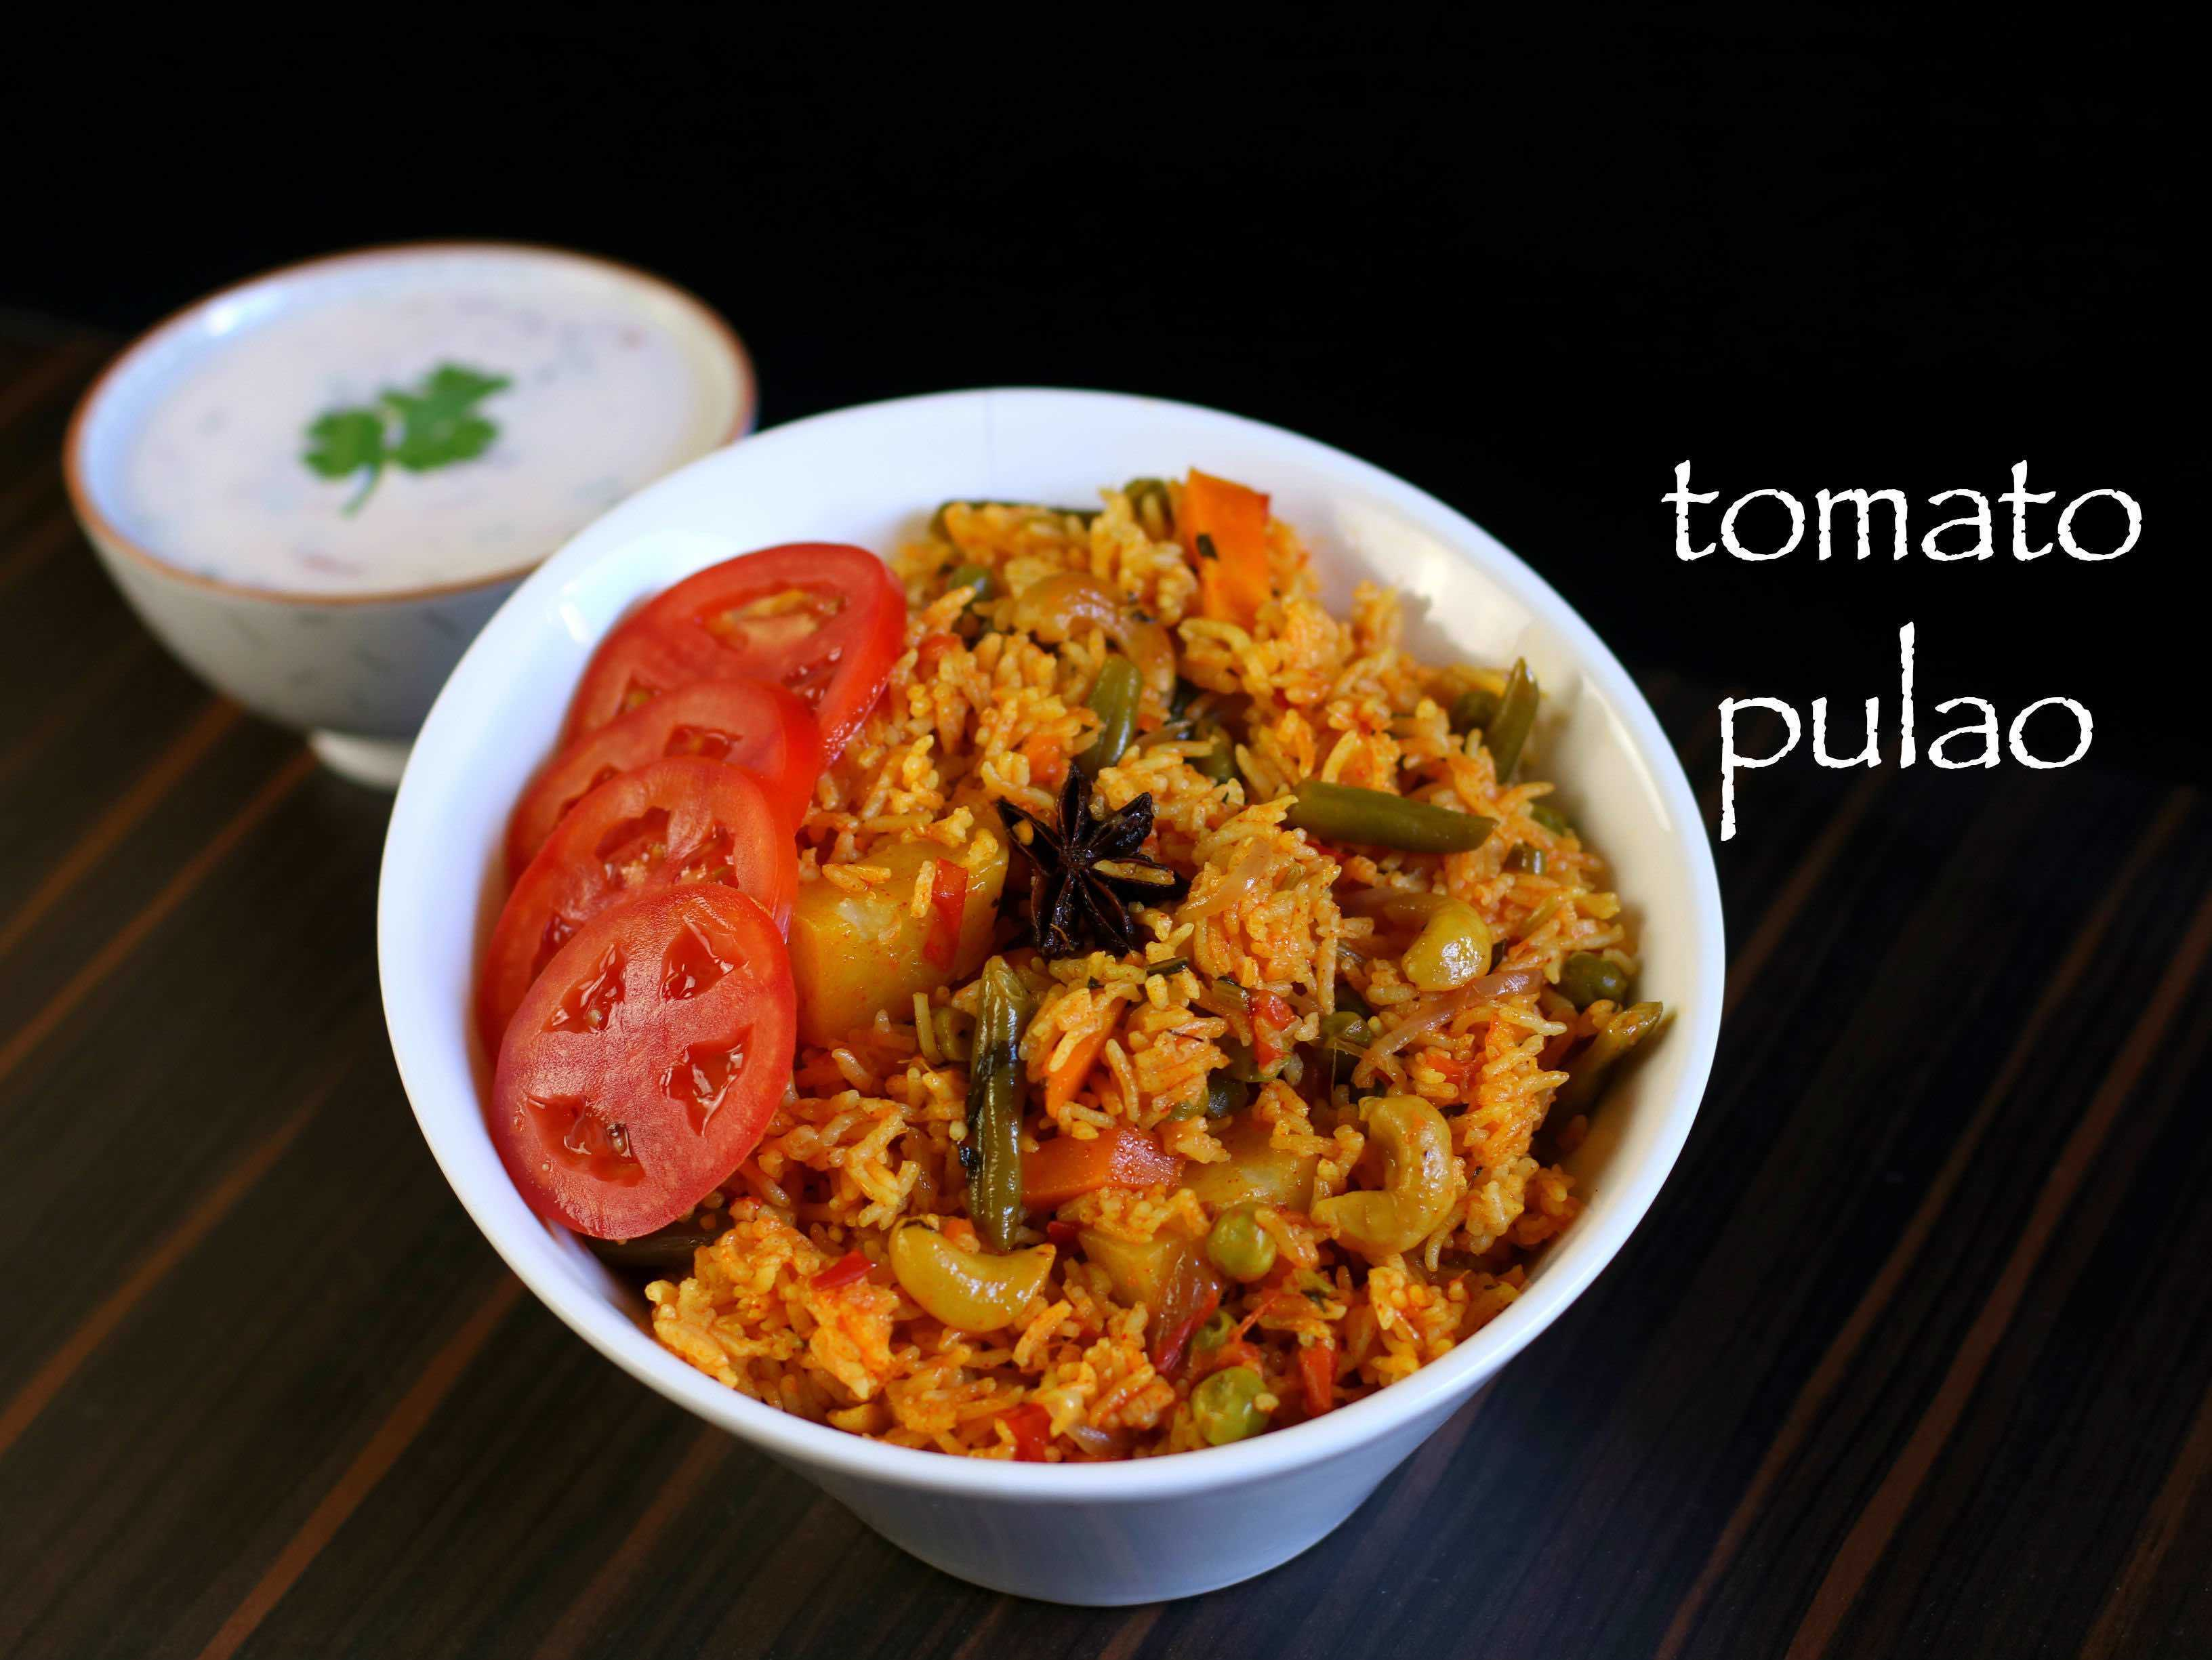 tomato pulao recipe | tomato bath recipe | south indian tomato rice